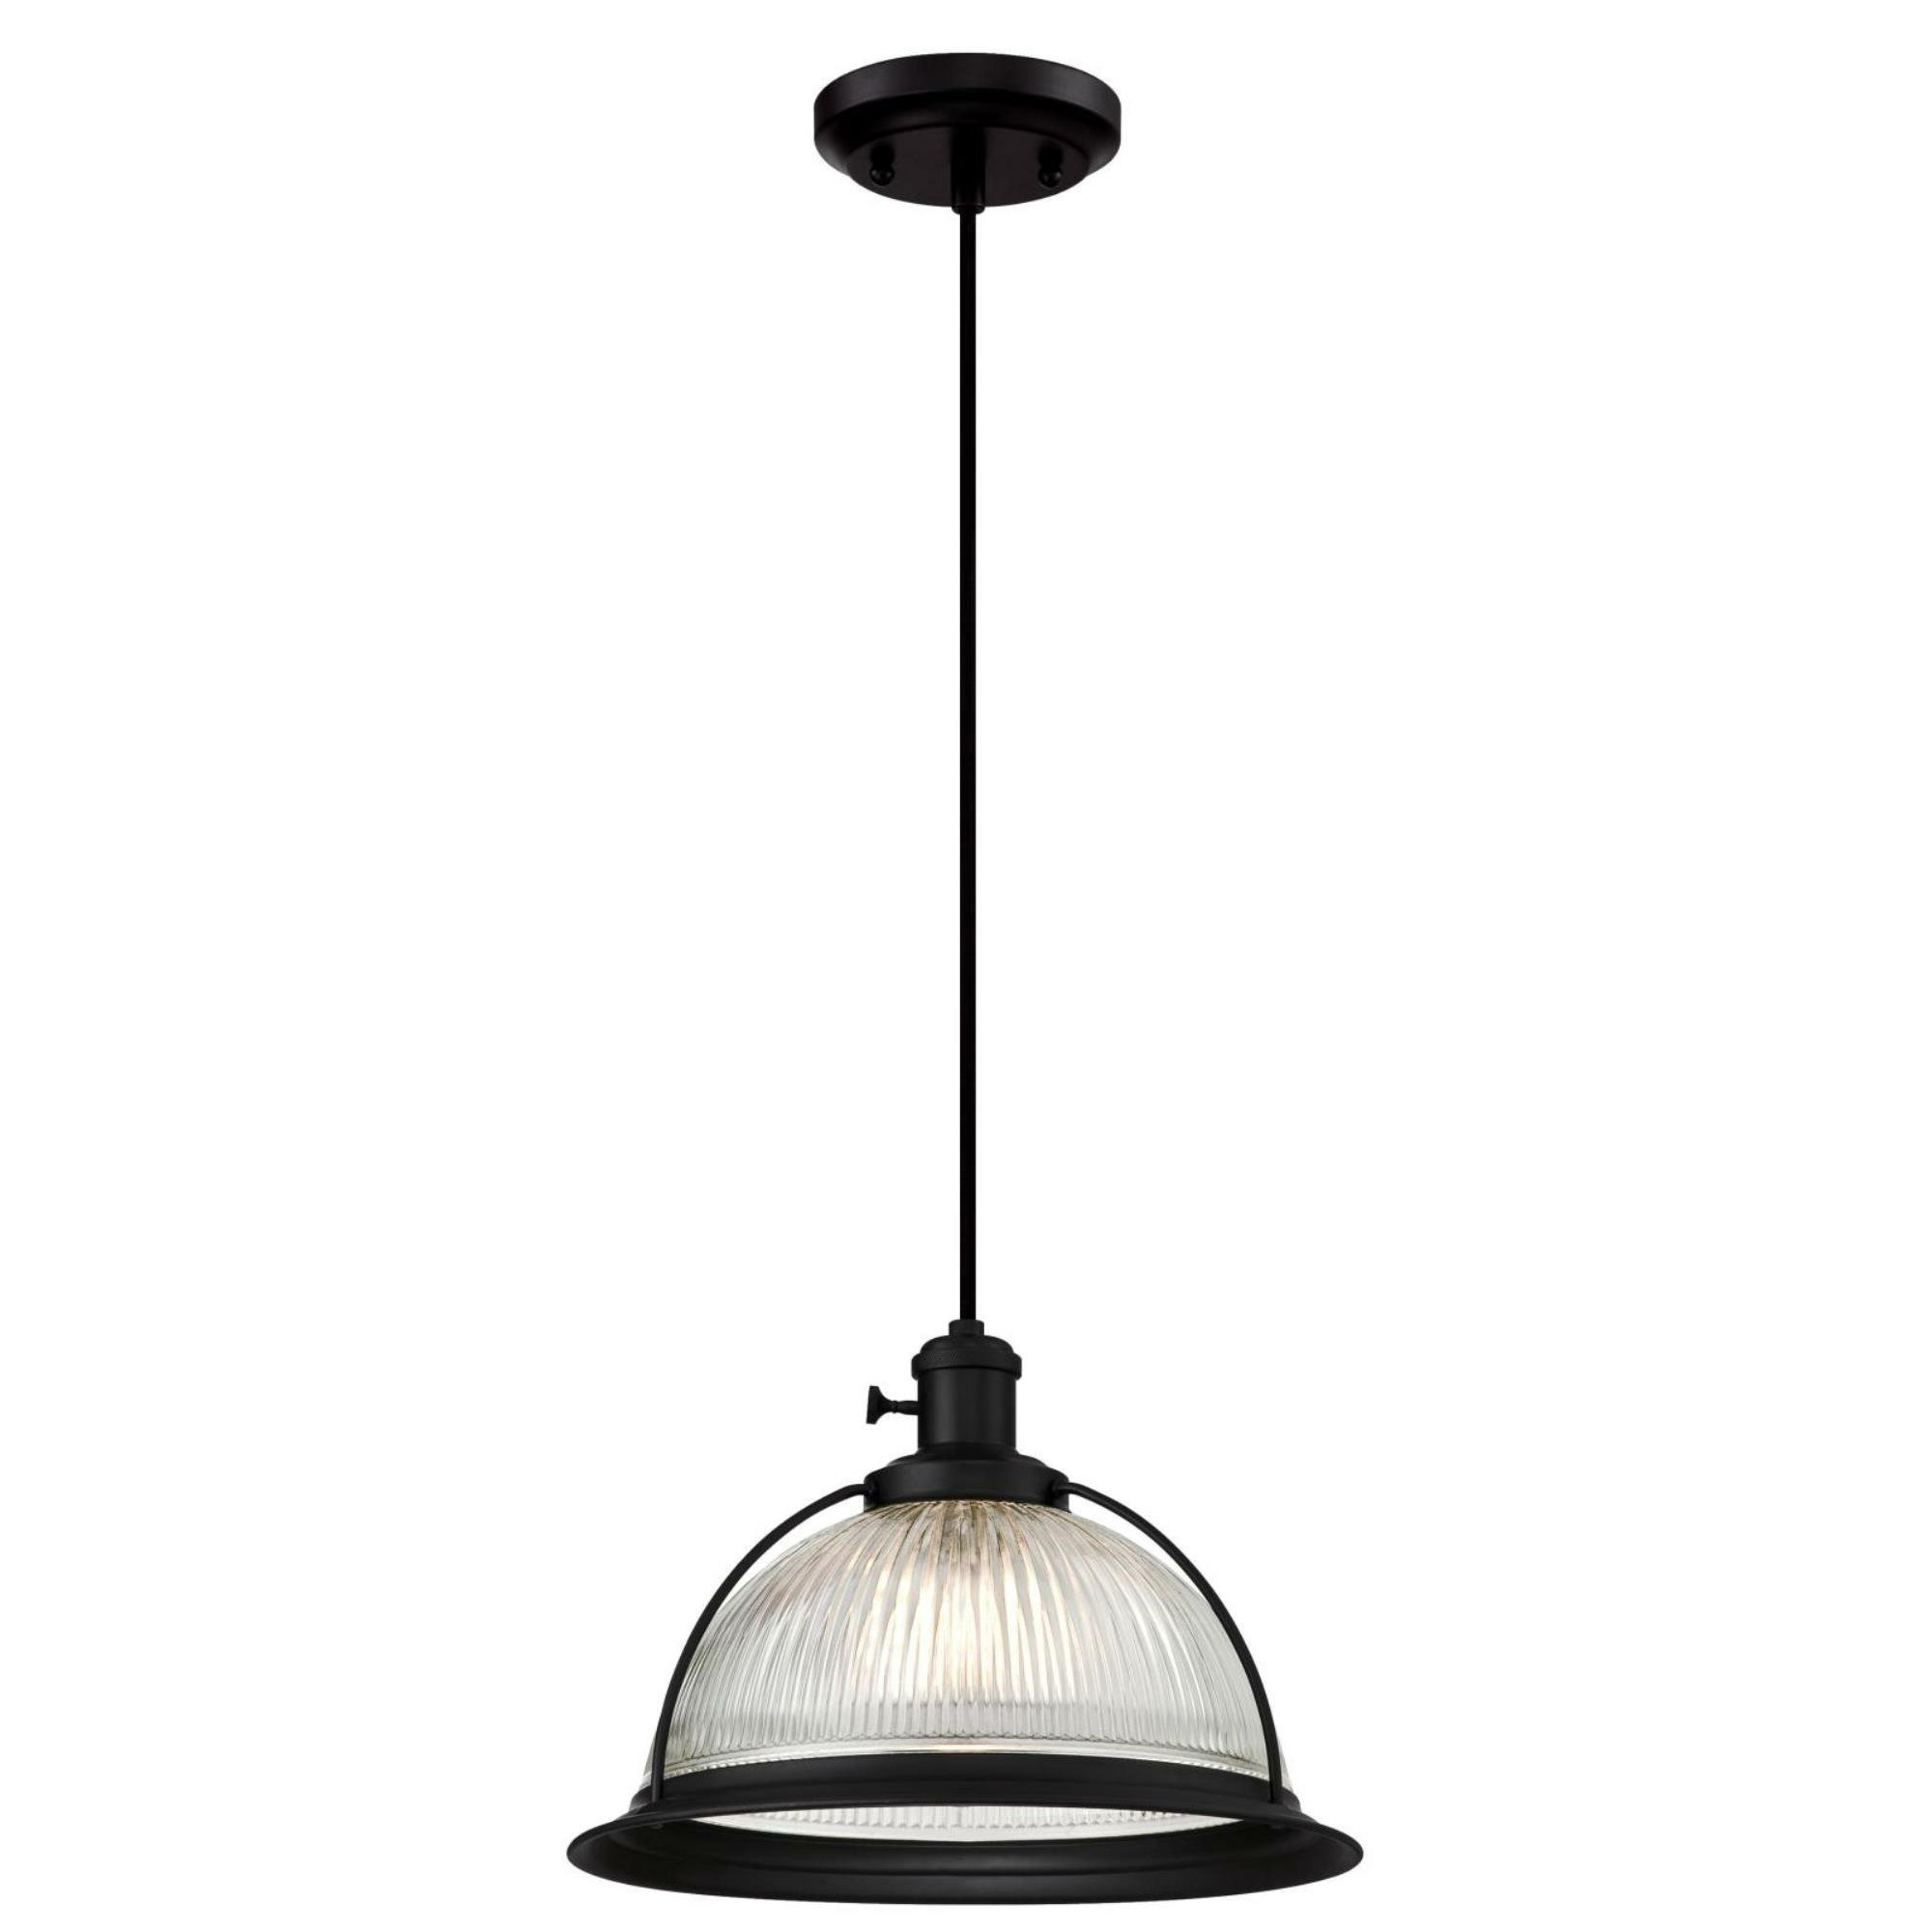 Best And Newest Abernathy 1 Light Dome Pendants Regarding Delway 1 Light Single Dome Pendant (View 9 of 20)